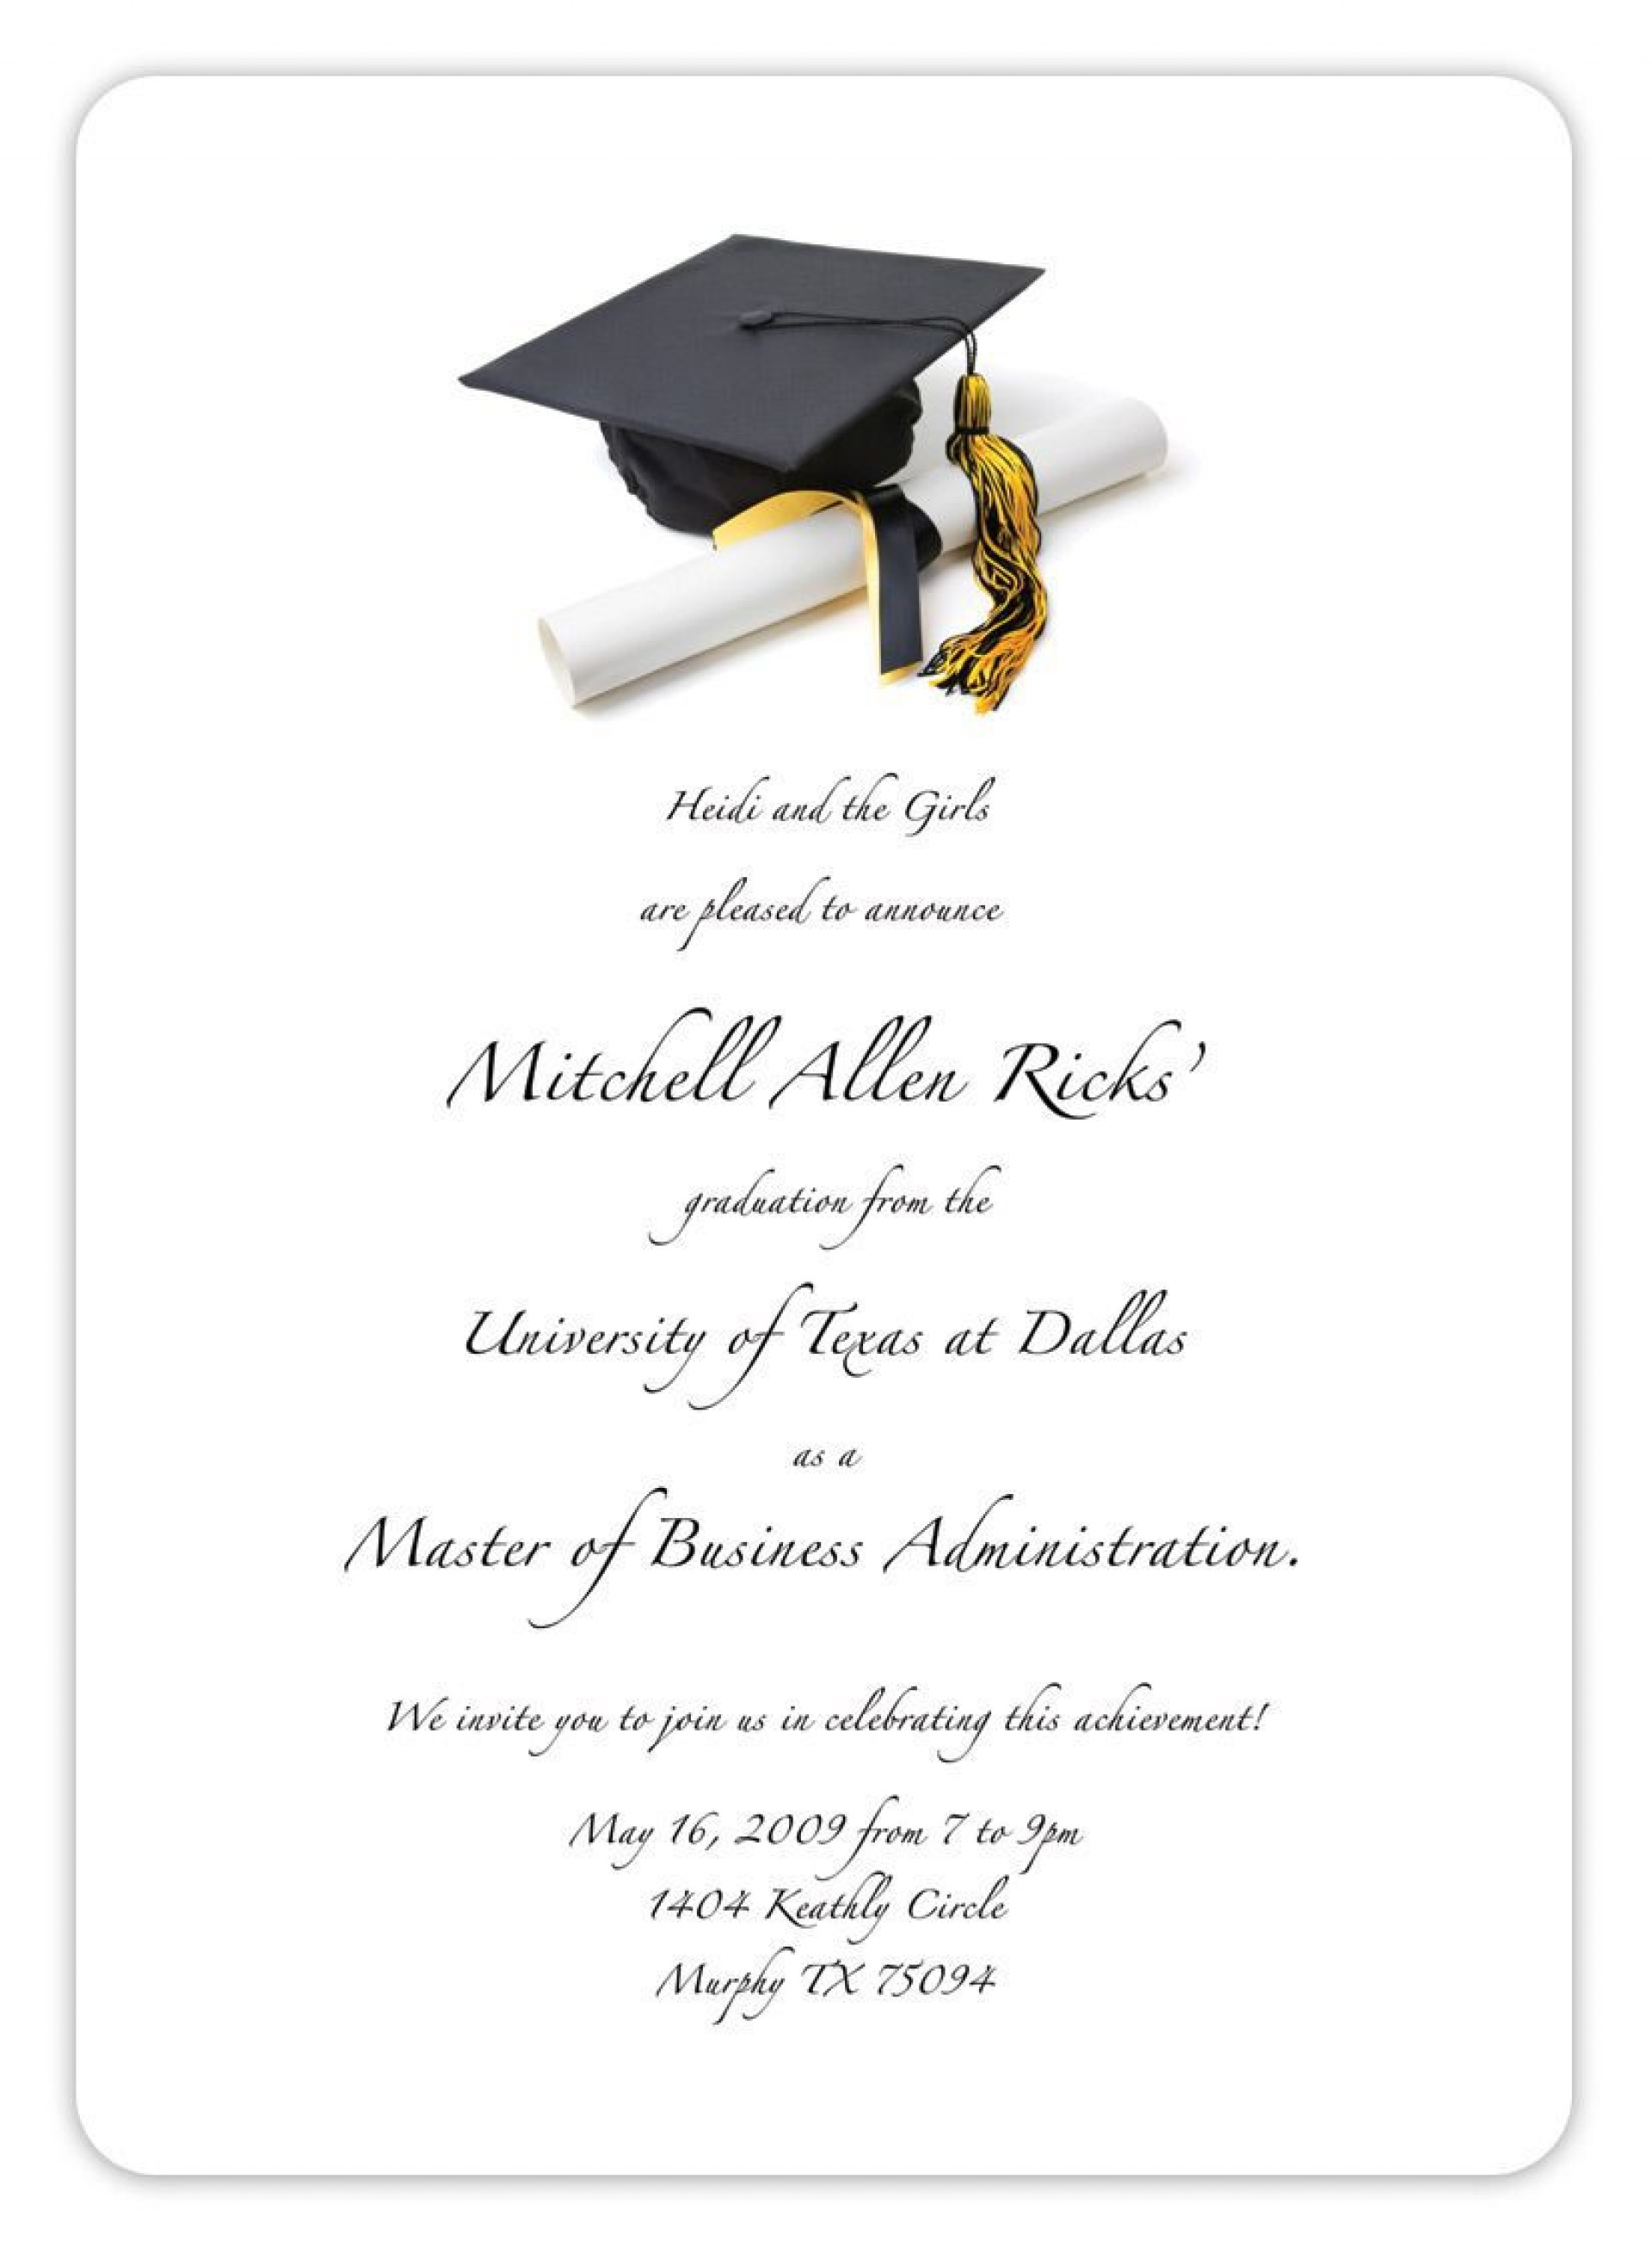 006 Breathtaking Free Graduation Announcement Template High Definition  Templates For Word Microsoft1920